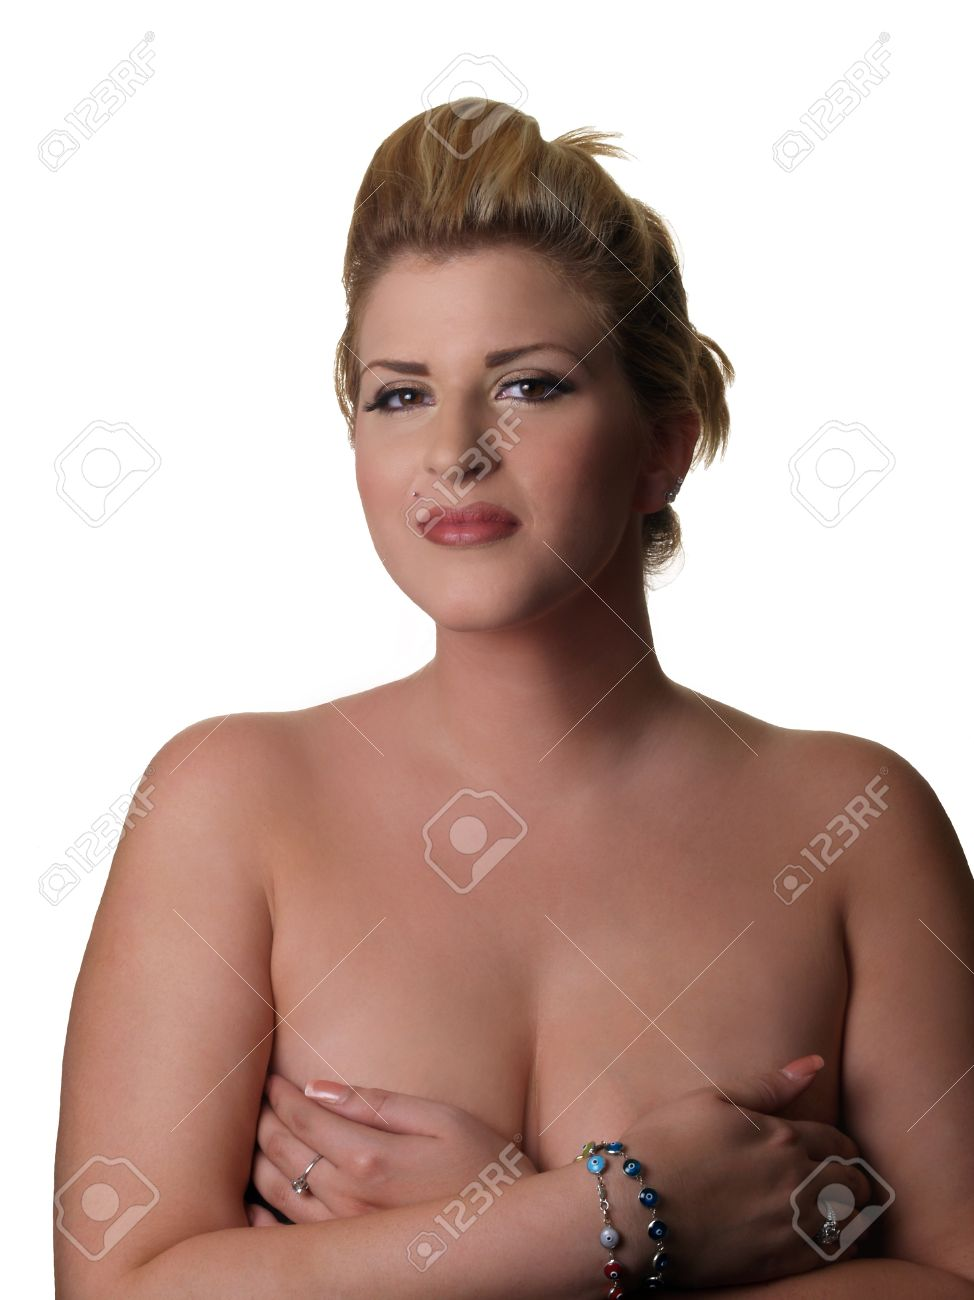 Plus-size Caucasian Model Topless Hands Covering Breasts Stock ...